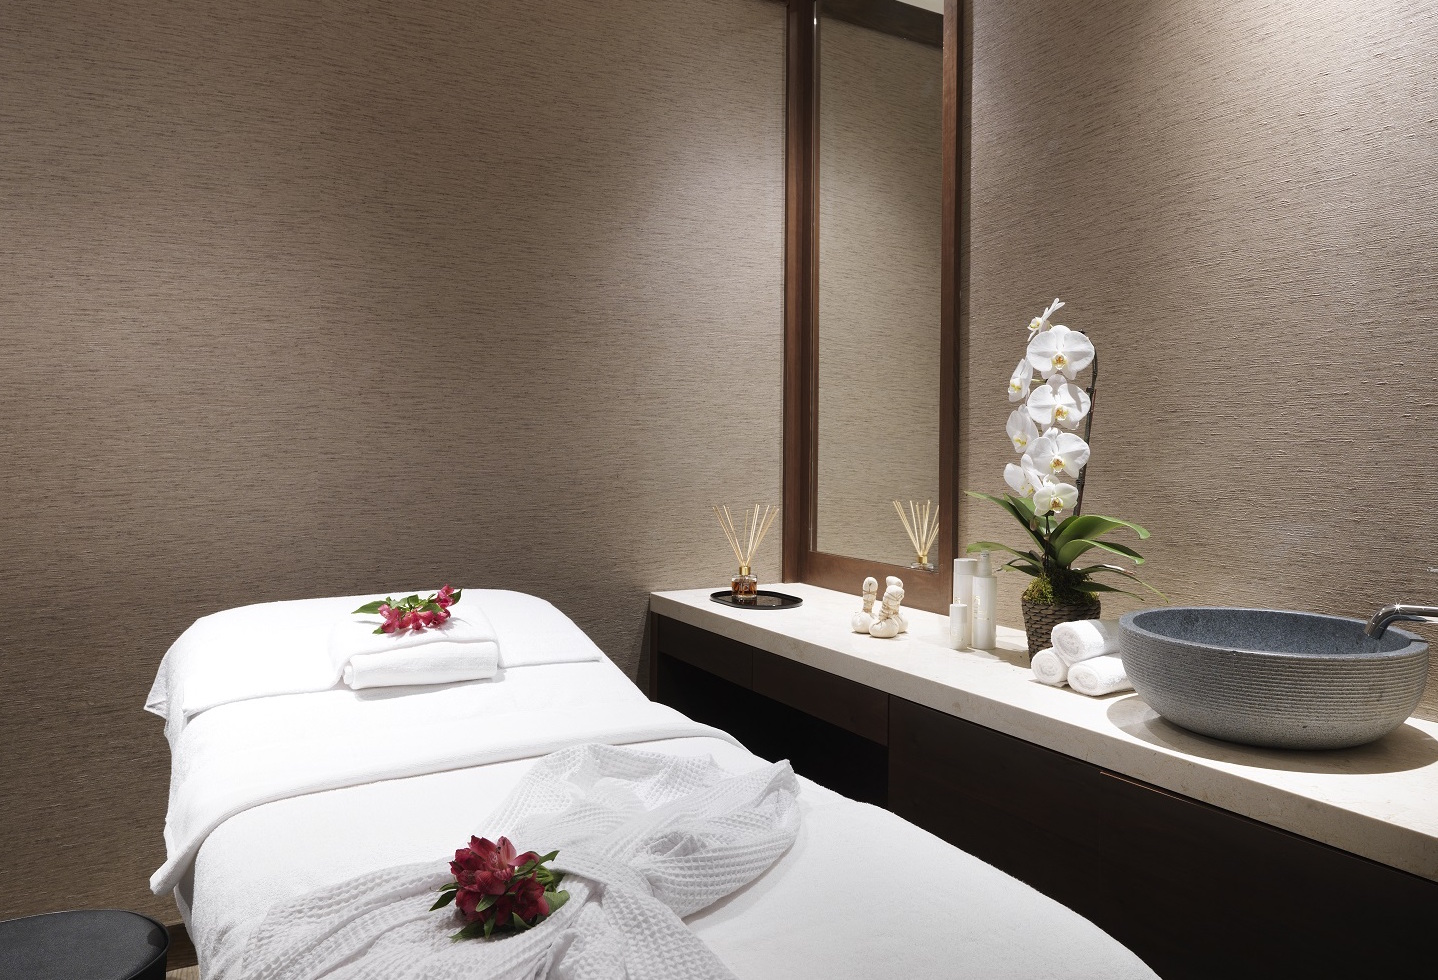 PPL- LHR T2 Arrival - Massage Room 2